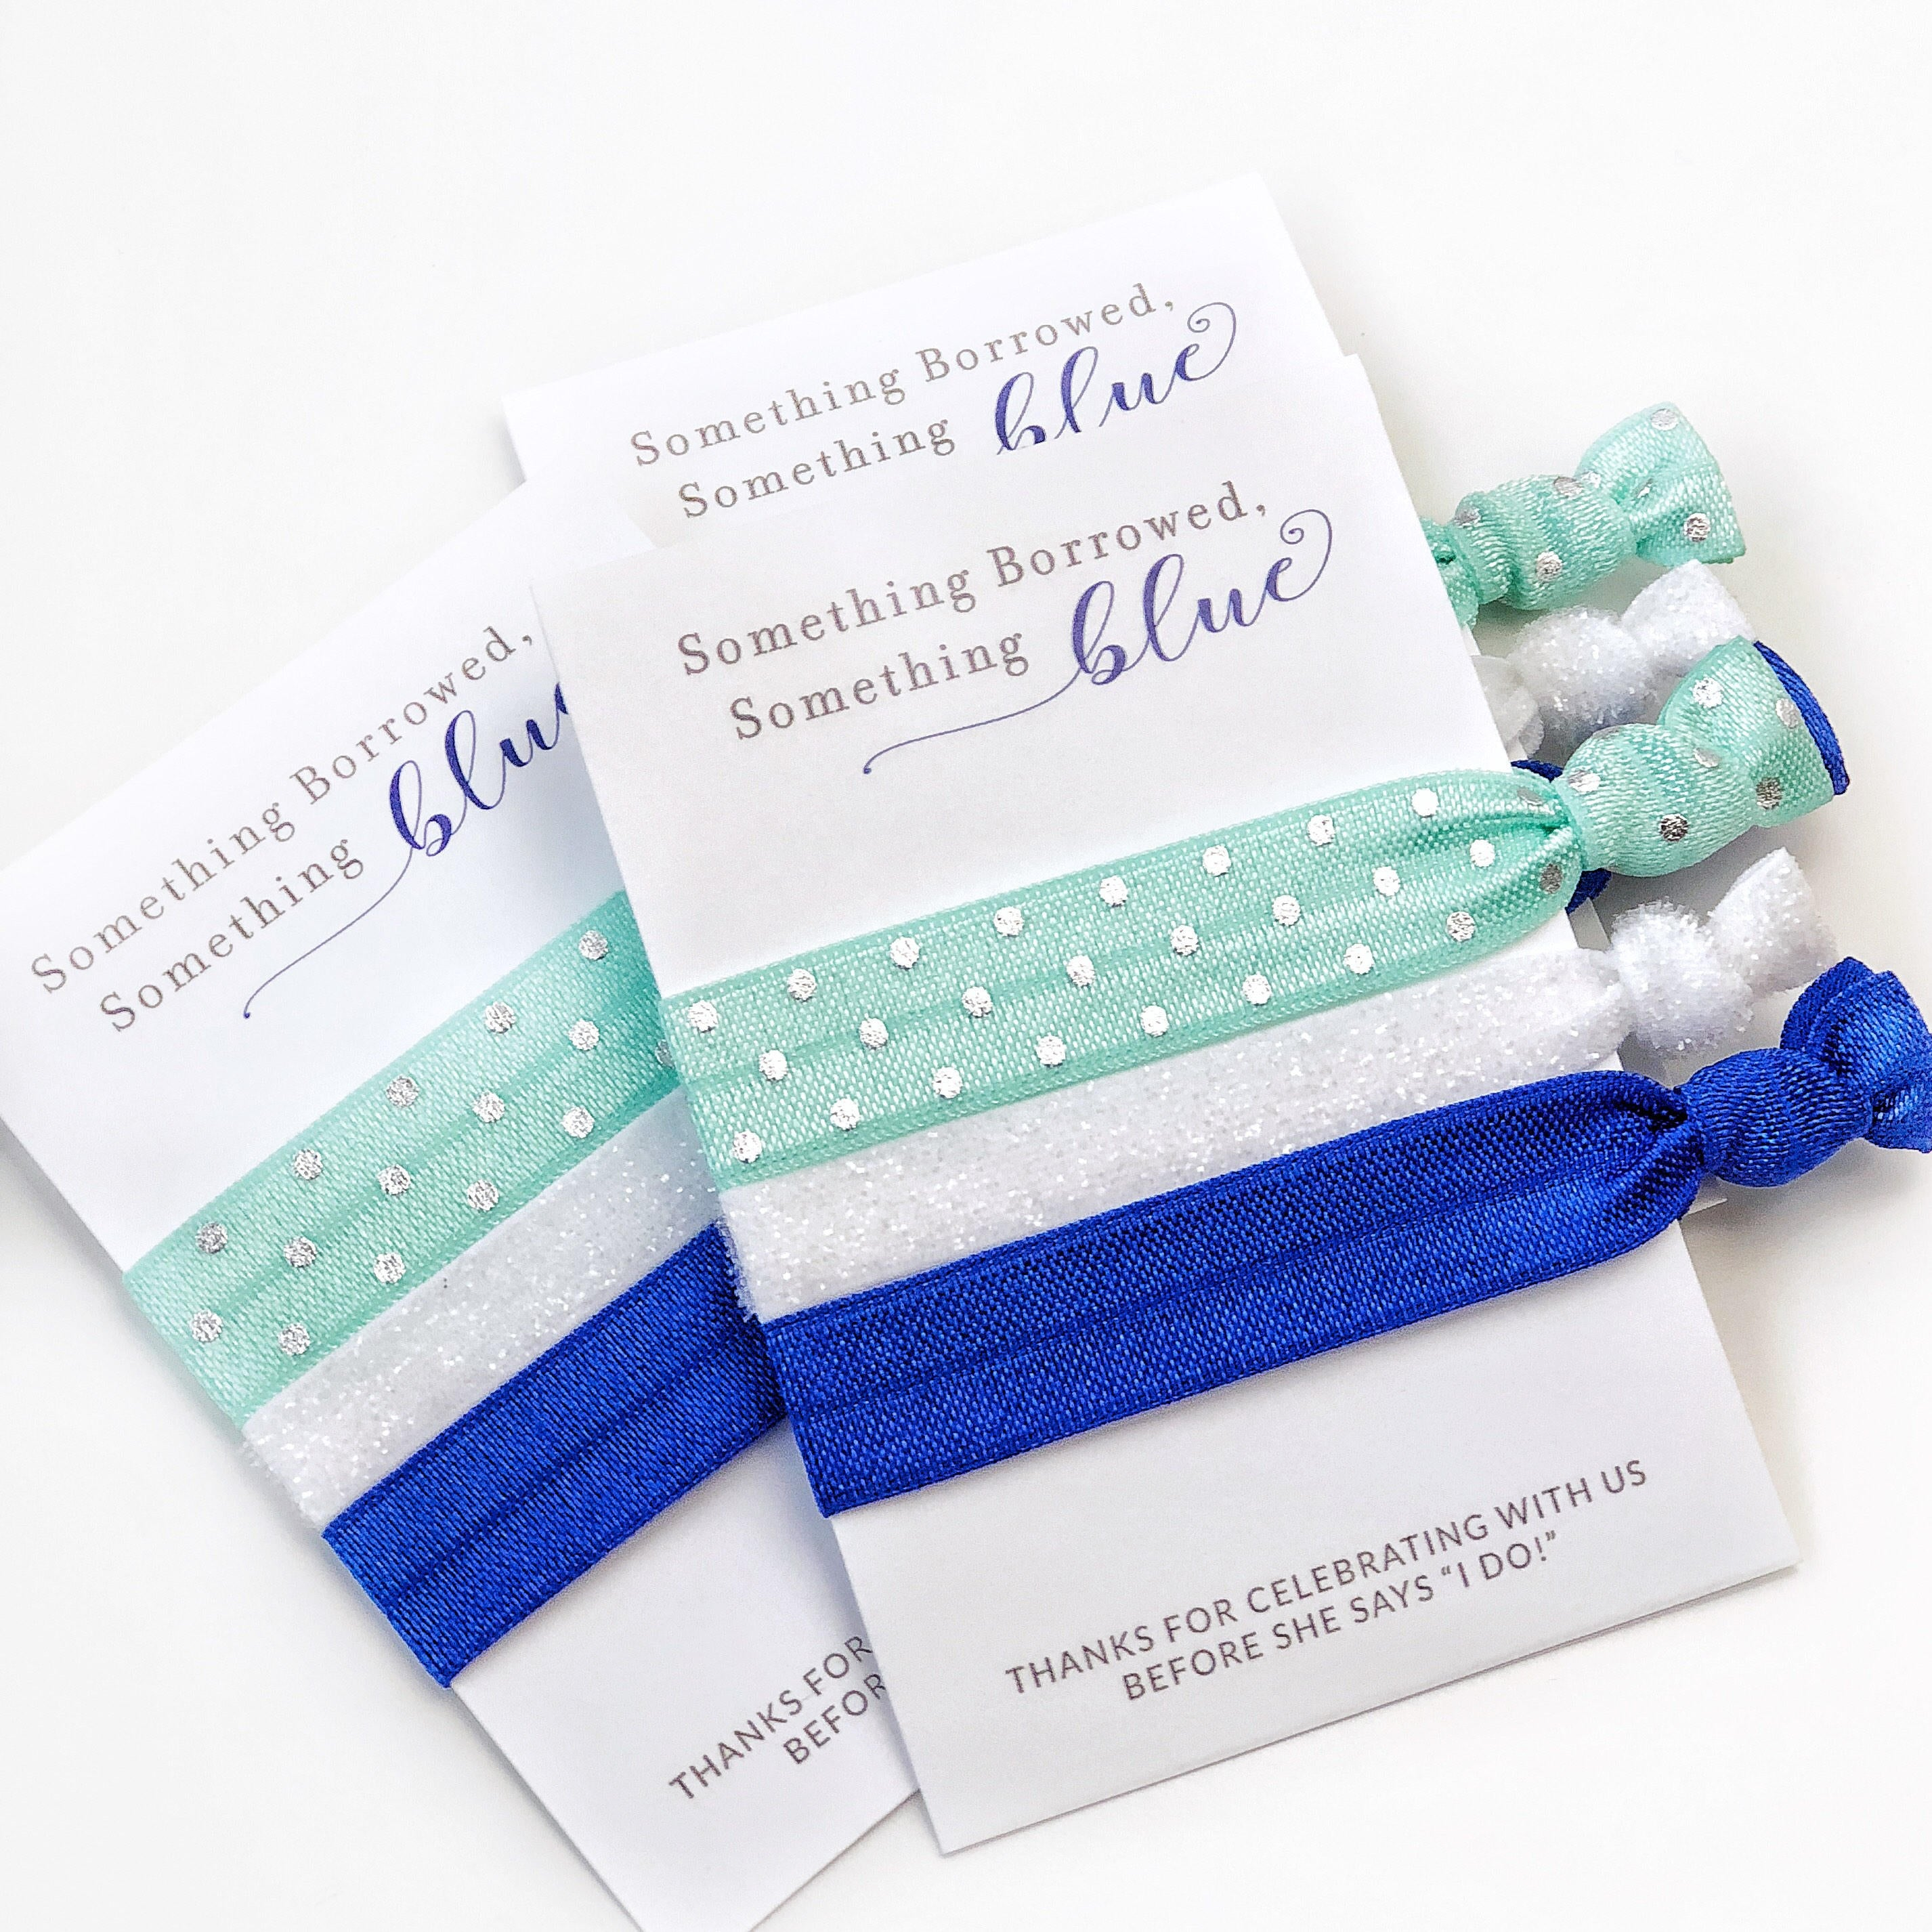 something blue bridal shower and bachelorette party favors small gifts plumpolkadot